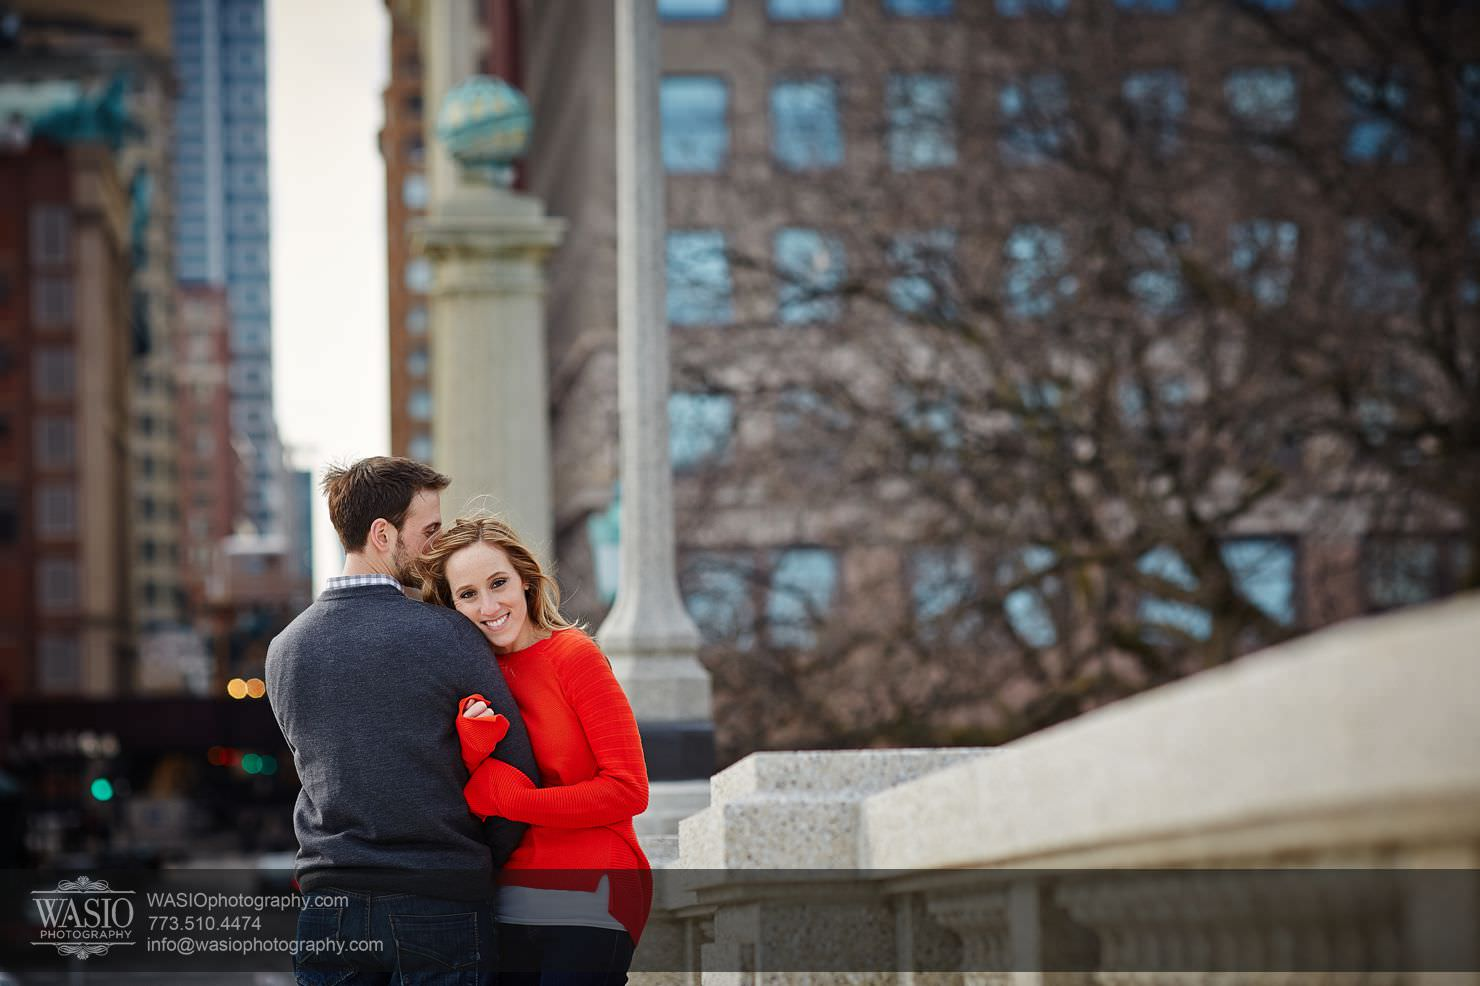 004_Chicago-Winter-Engagement_Courtney-Danny Chicago Winter Engagement - Courtney + Danny